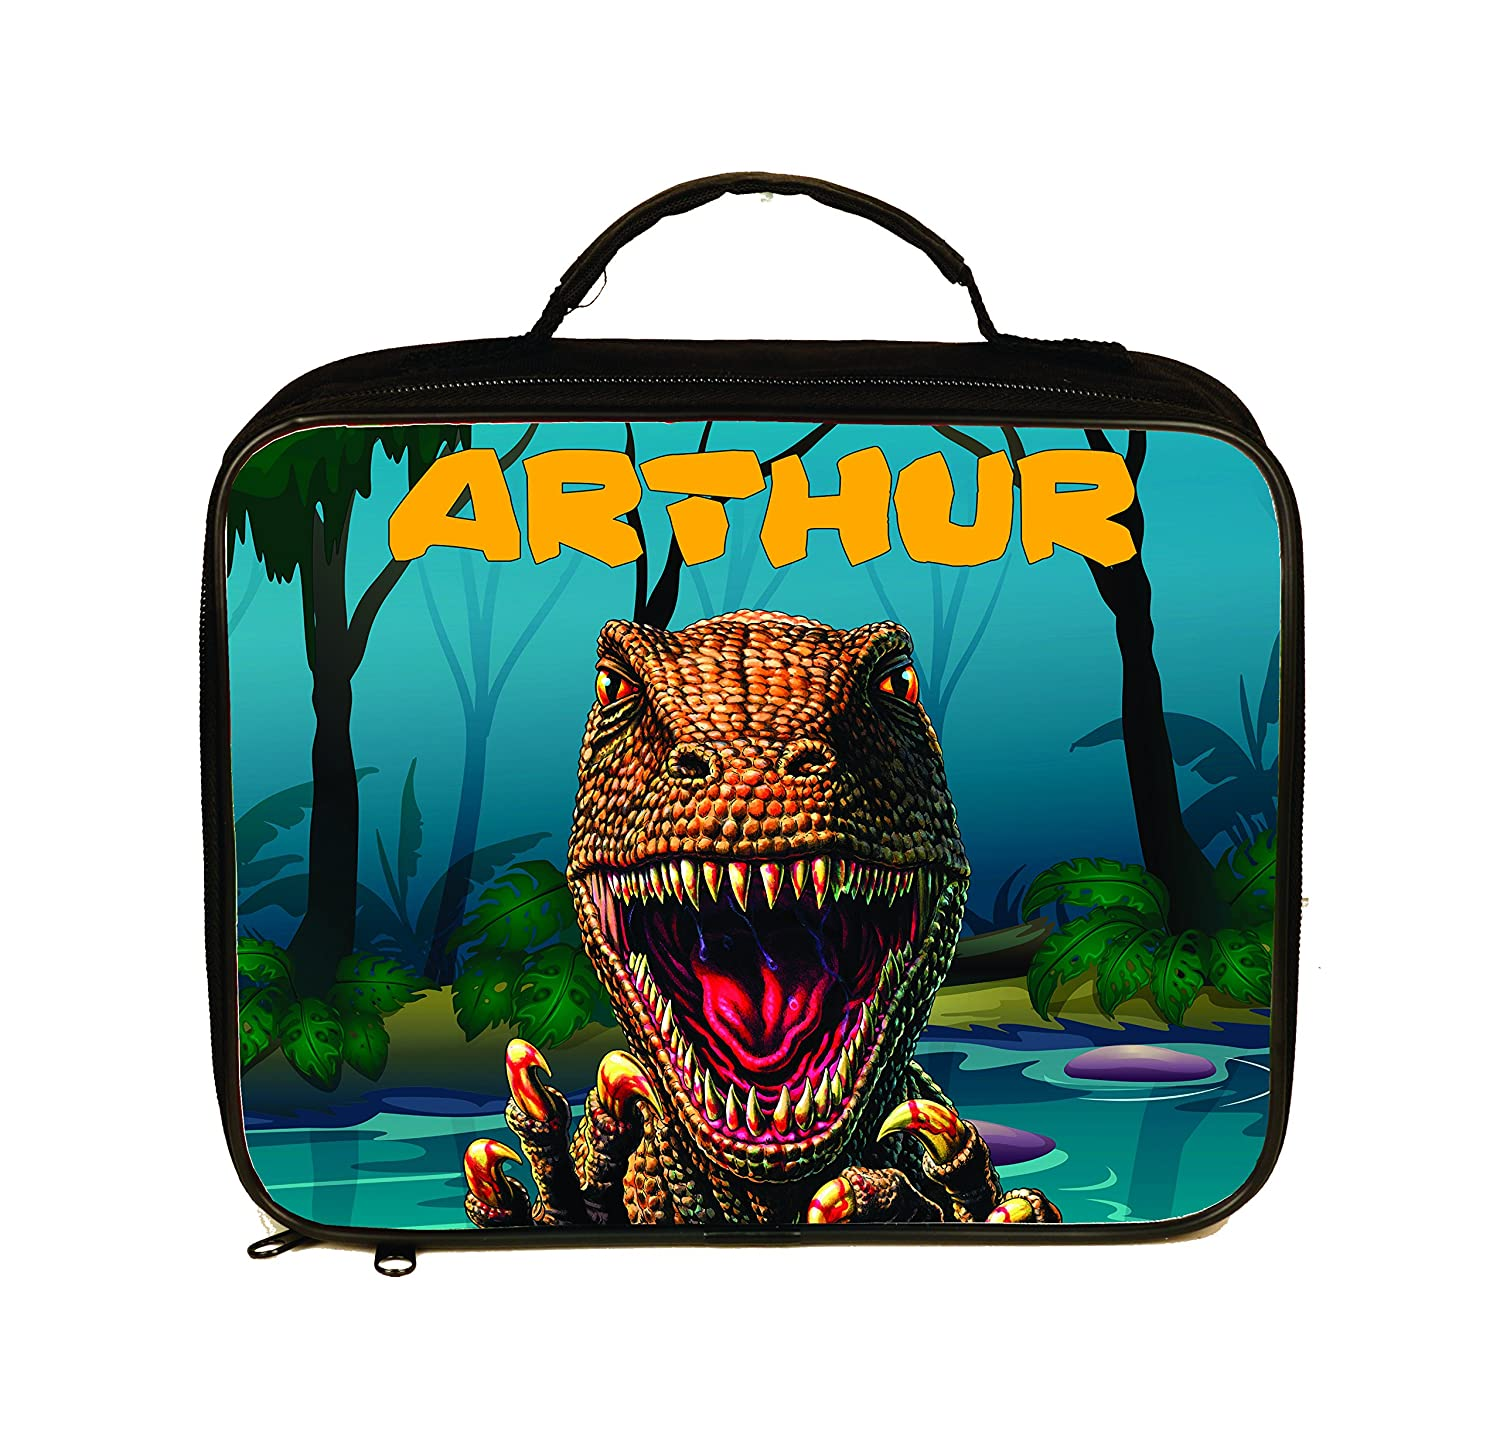 Dinosaur TRex Personalized Insulated Lunch Tote/Lunchbox